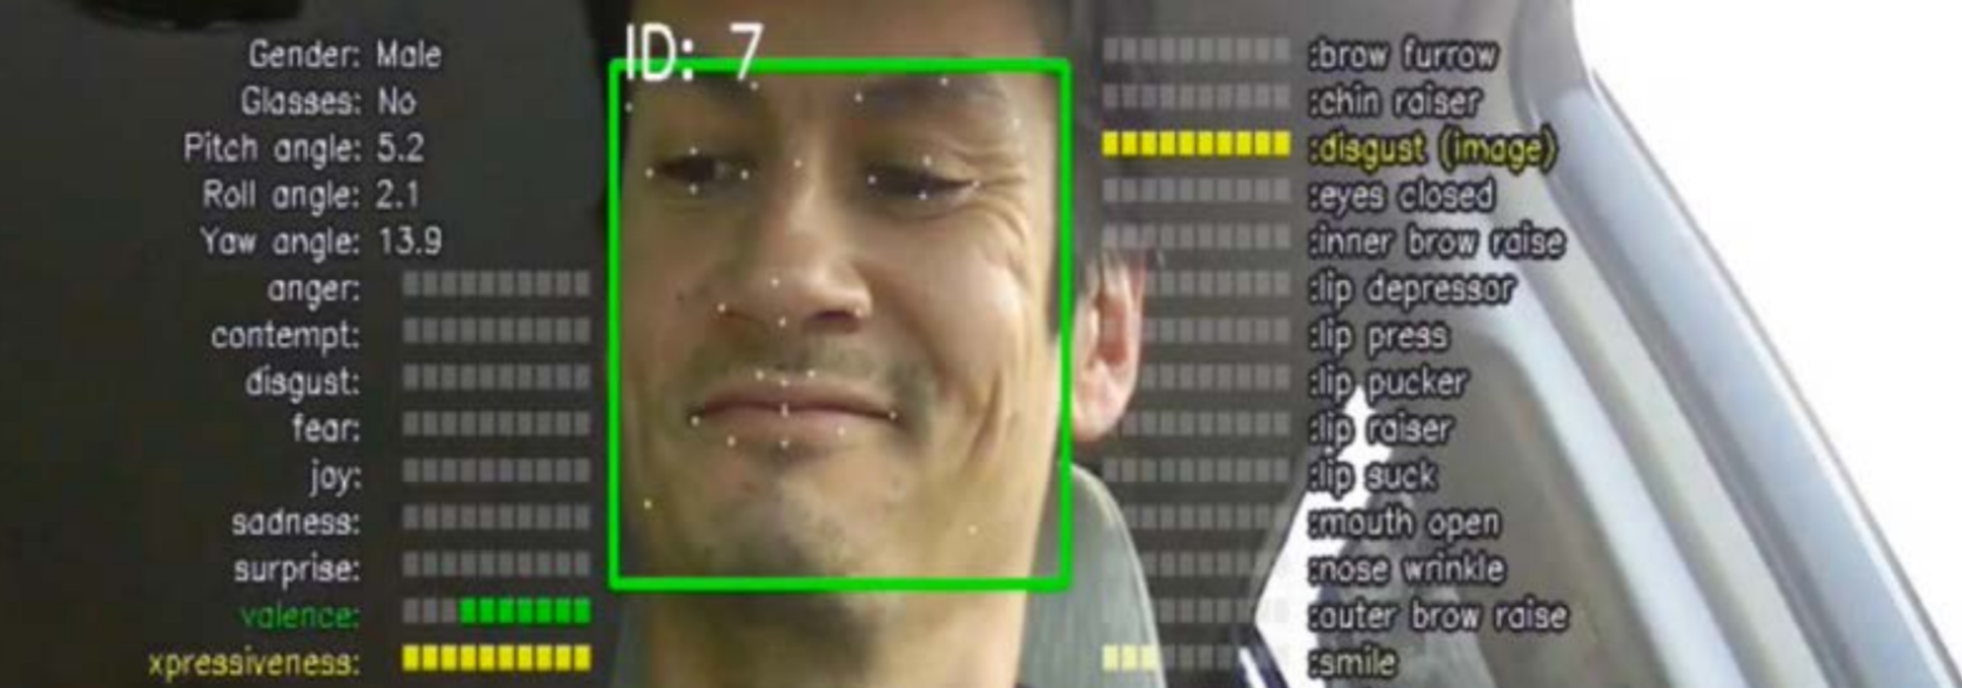 affectiva_emotion_recognition_for_Cars.png